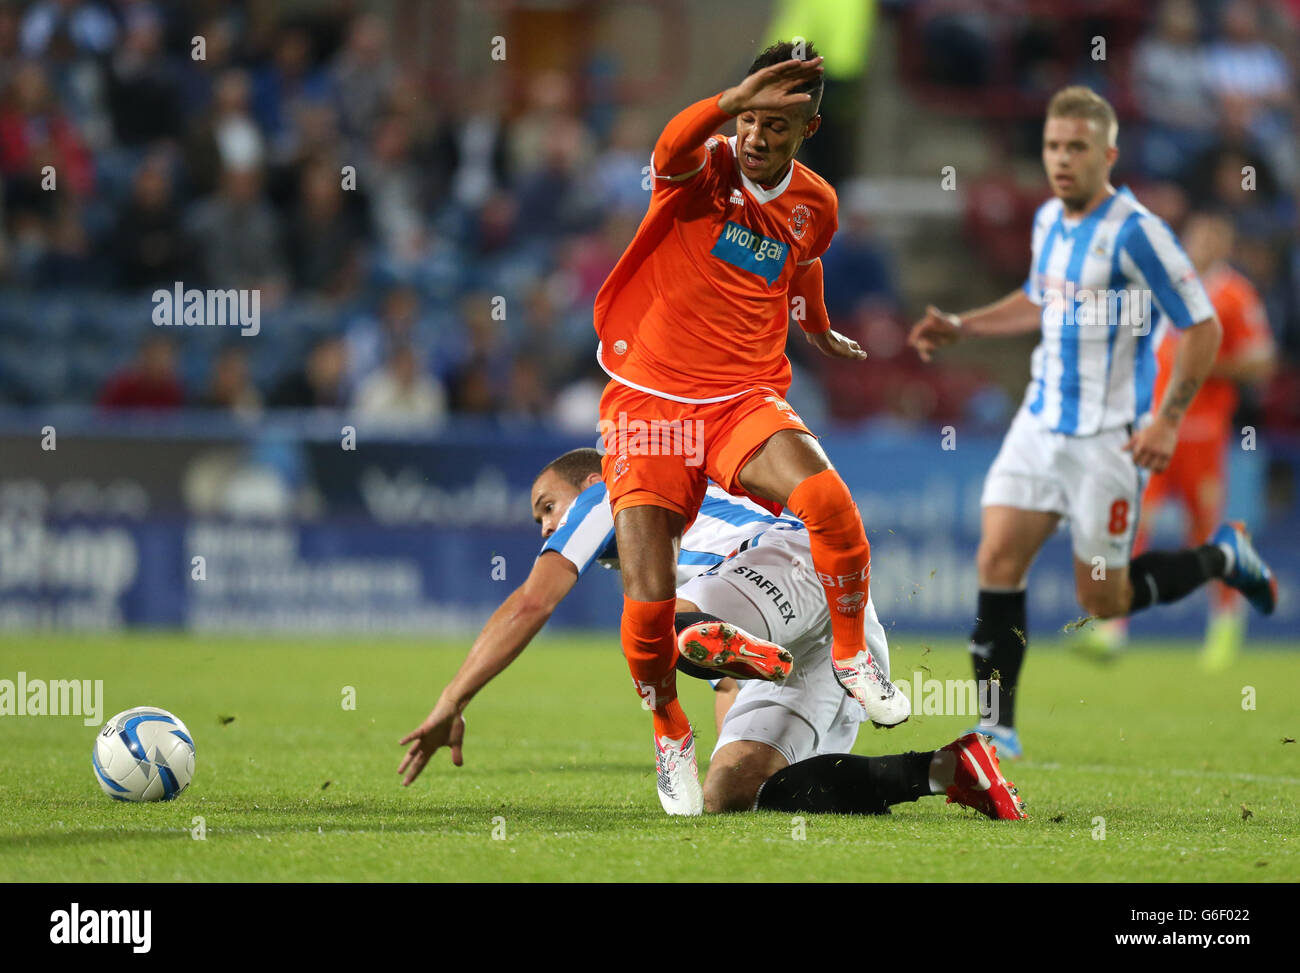 Huddersfield v blackpool betting preview sports betting calculator singapore